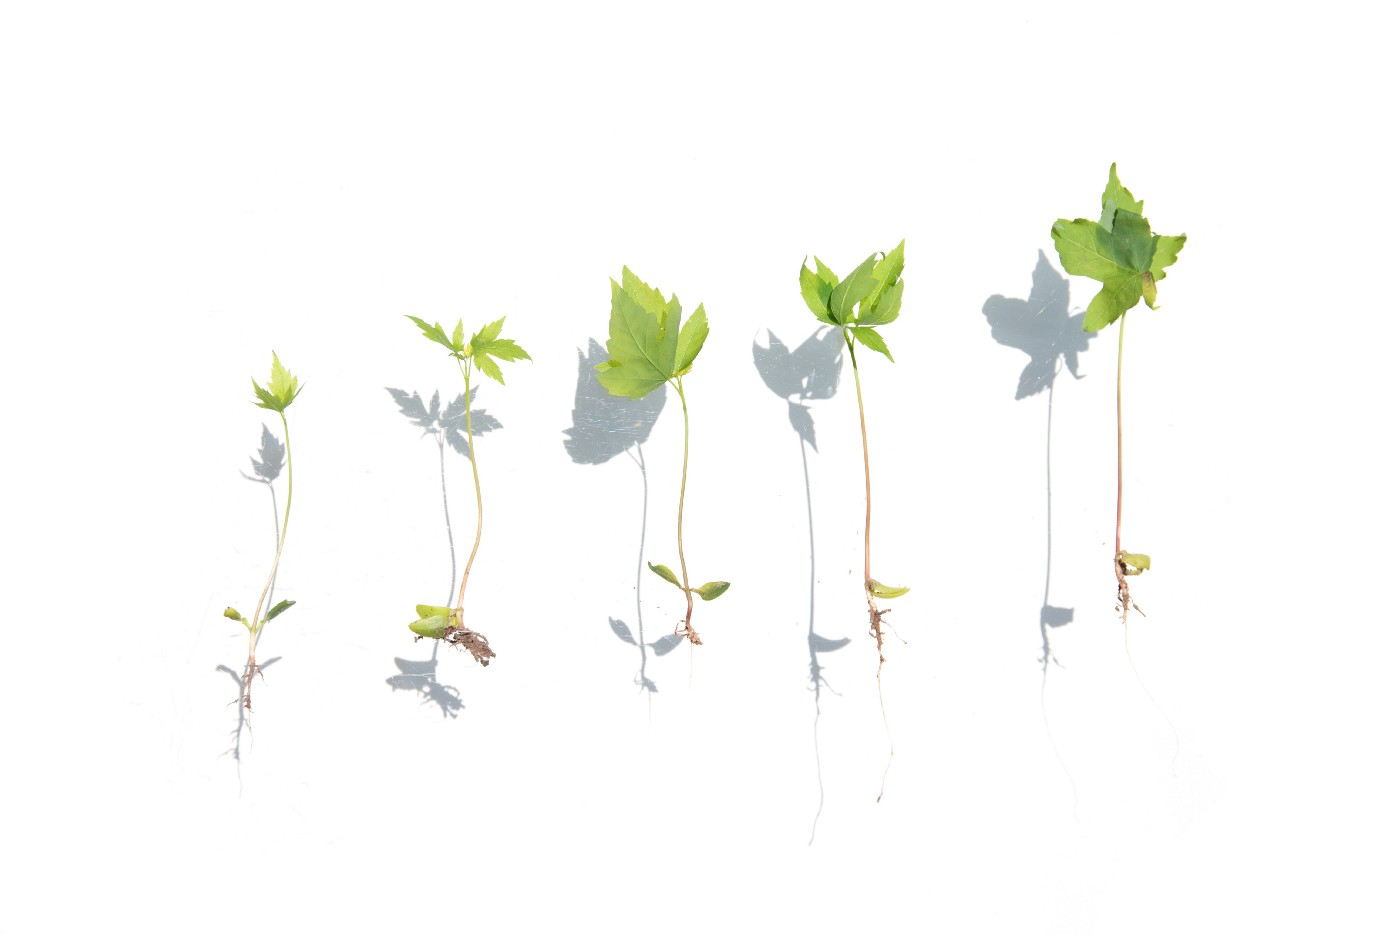 An image of five green seedlings, in advancing sizes.